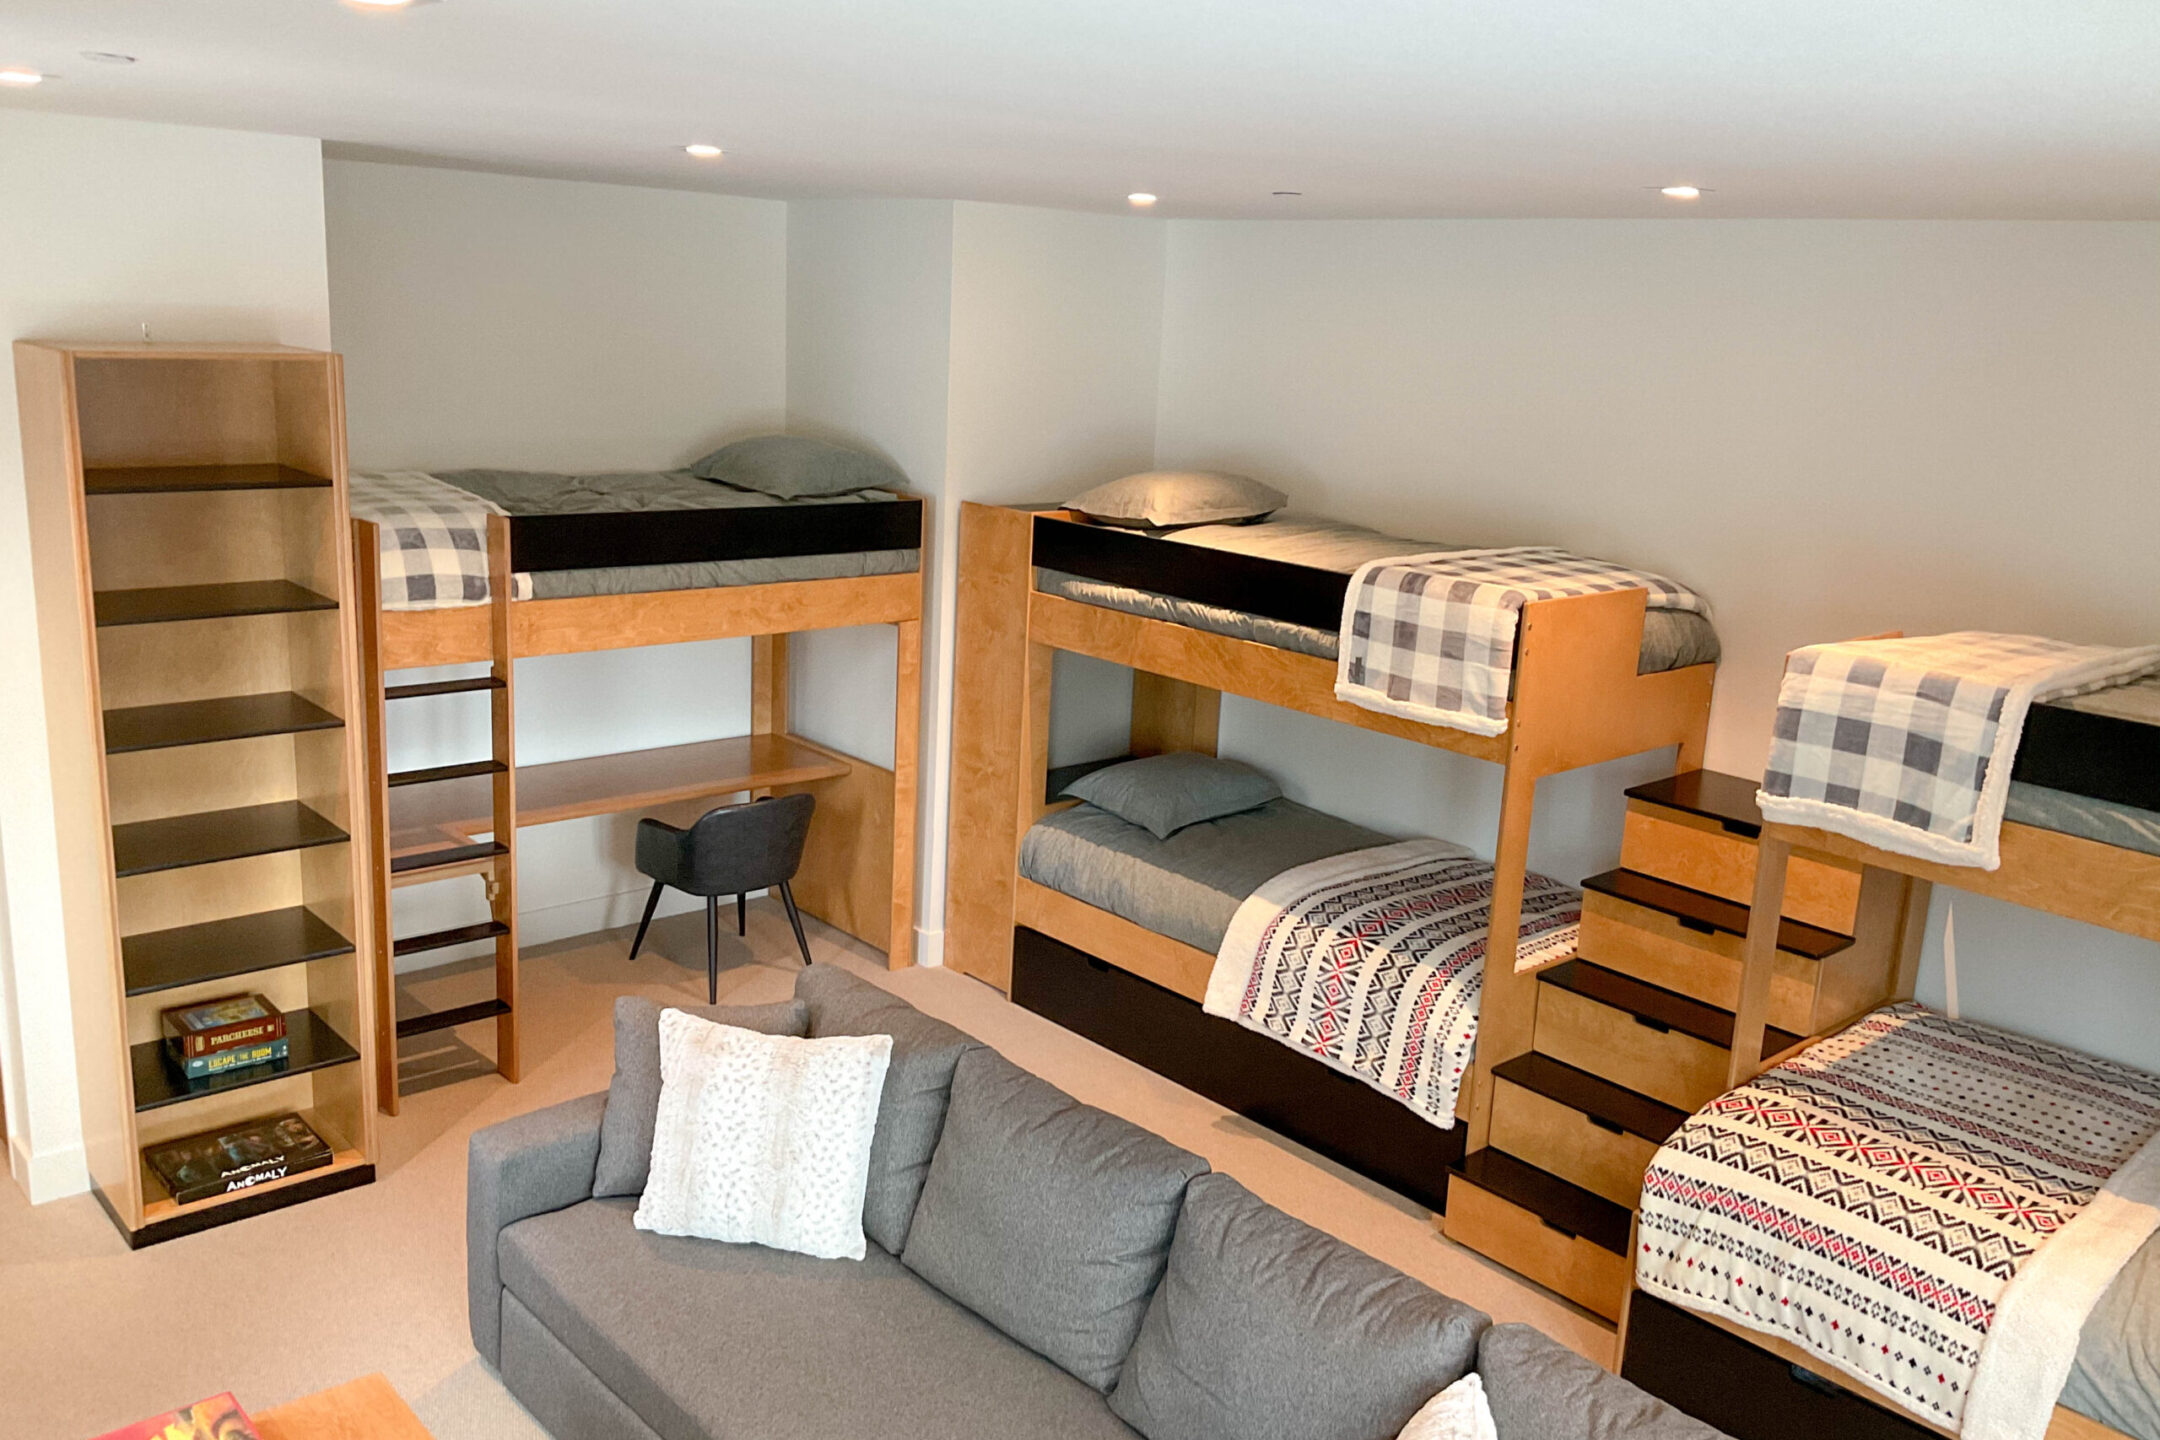 Full view of bunk room